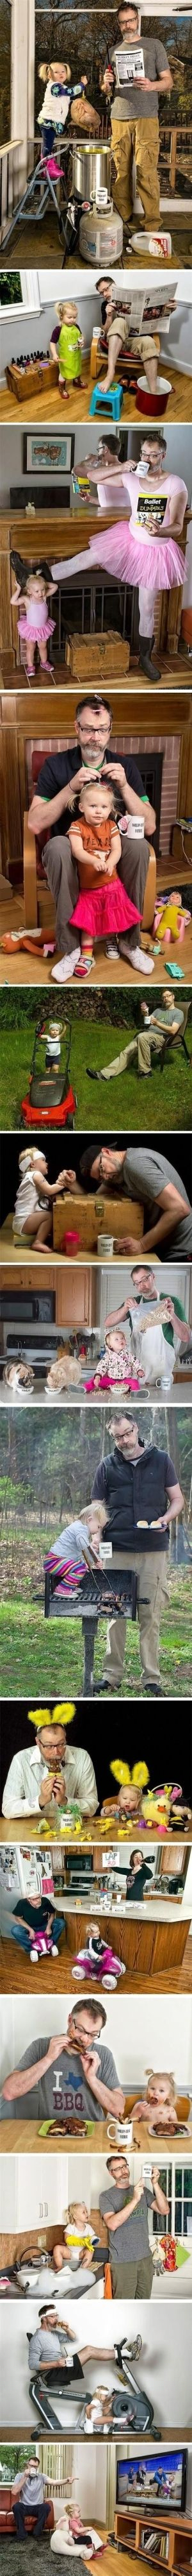 """When his daughter was a baby, Dave Engledow took a funny photo of himself holding her like a football while squirting her bottle of milk into his """"World's Best Father"""" coffee mug. It was meant as a joke, but the photo got such a positive reaction that it became a regular hobby and an internet sensation… not to mention, a great father-daughter bonding experience! Awesome. by Leticia A."""